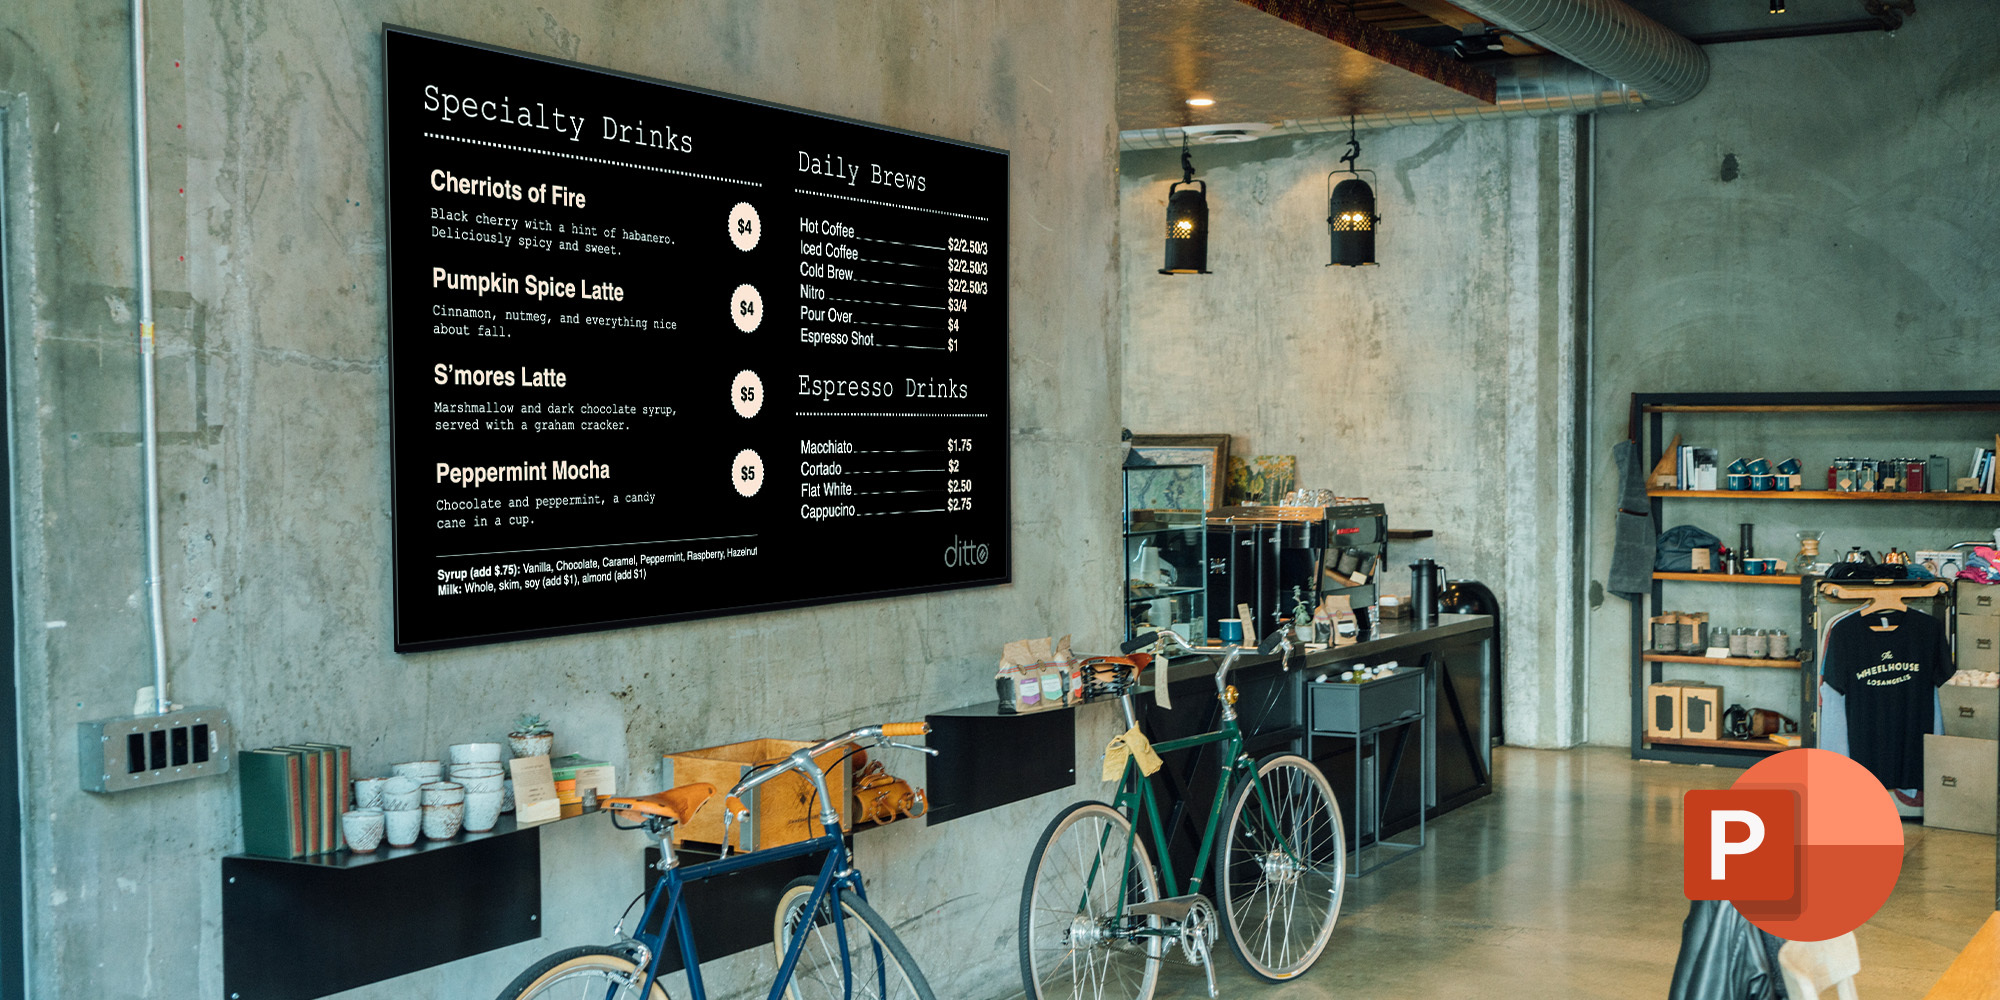 Digital menu boards from Microsoft PowerPoint